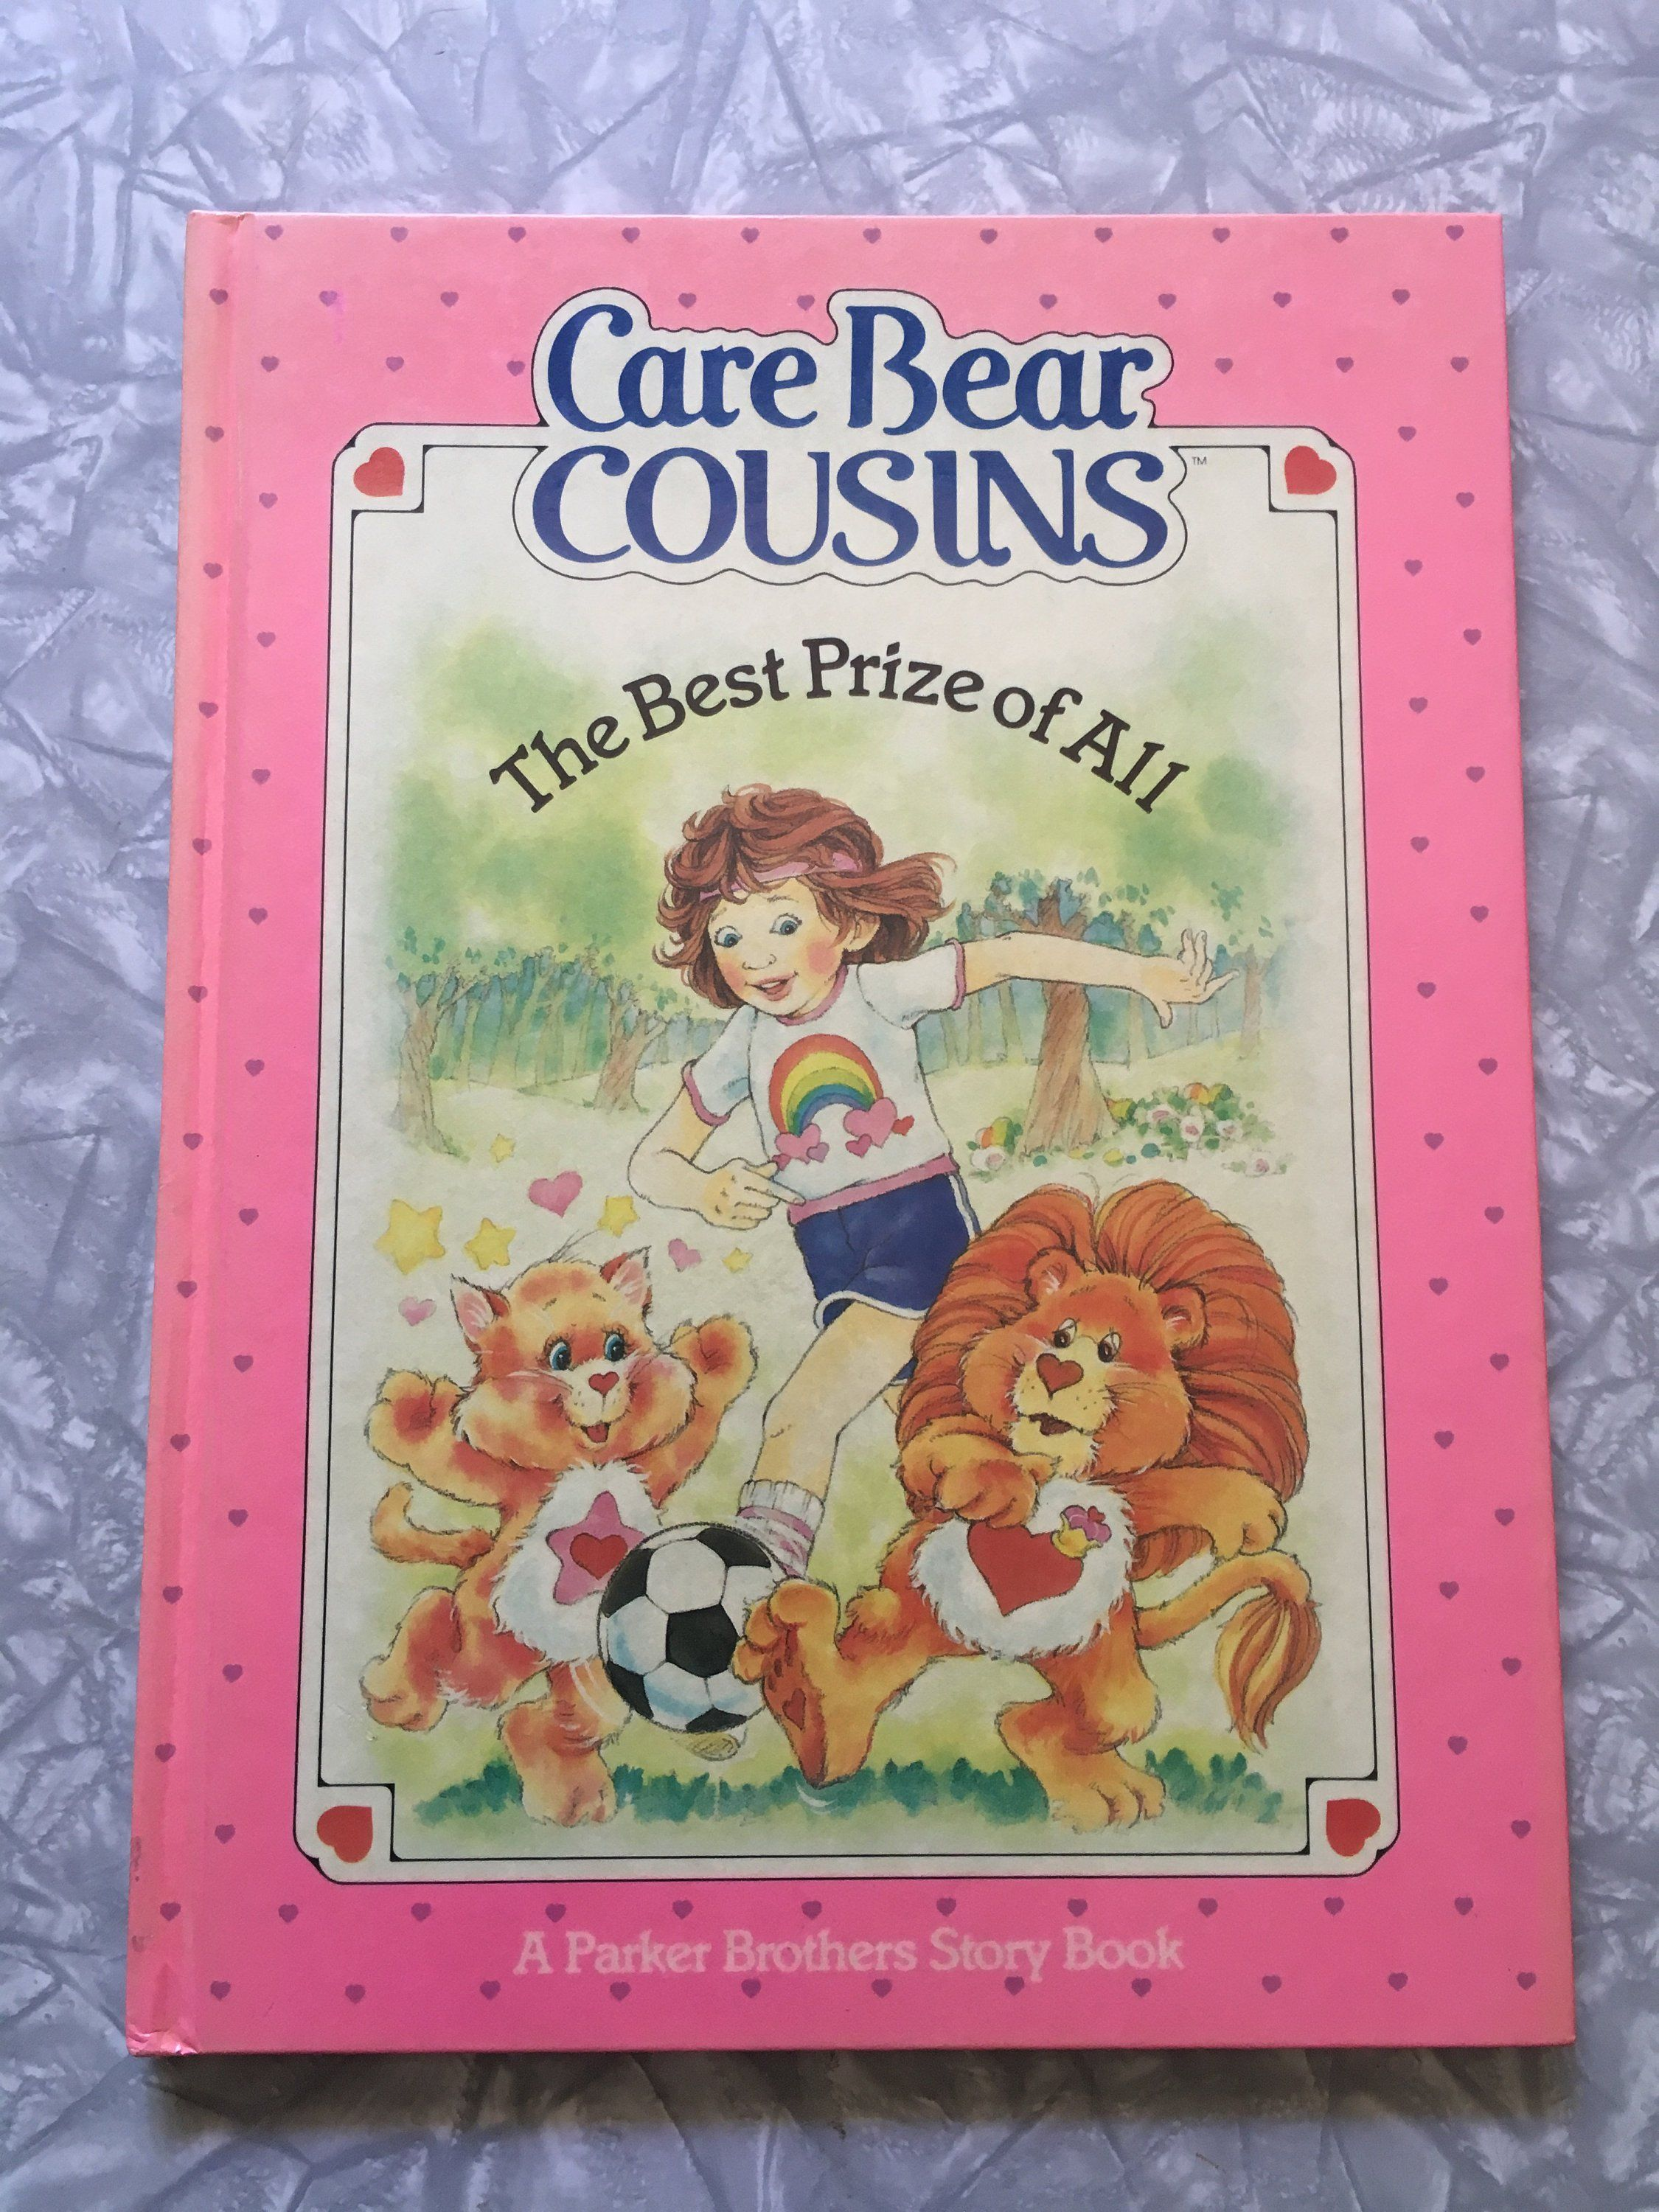 1985 Care Bear Cousins The Best Prize Of All Hardcover Childrens